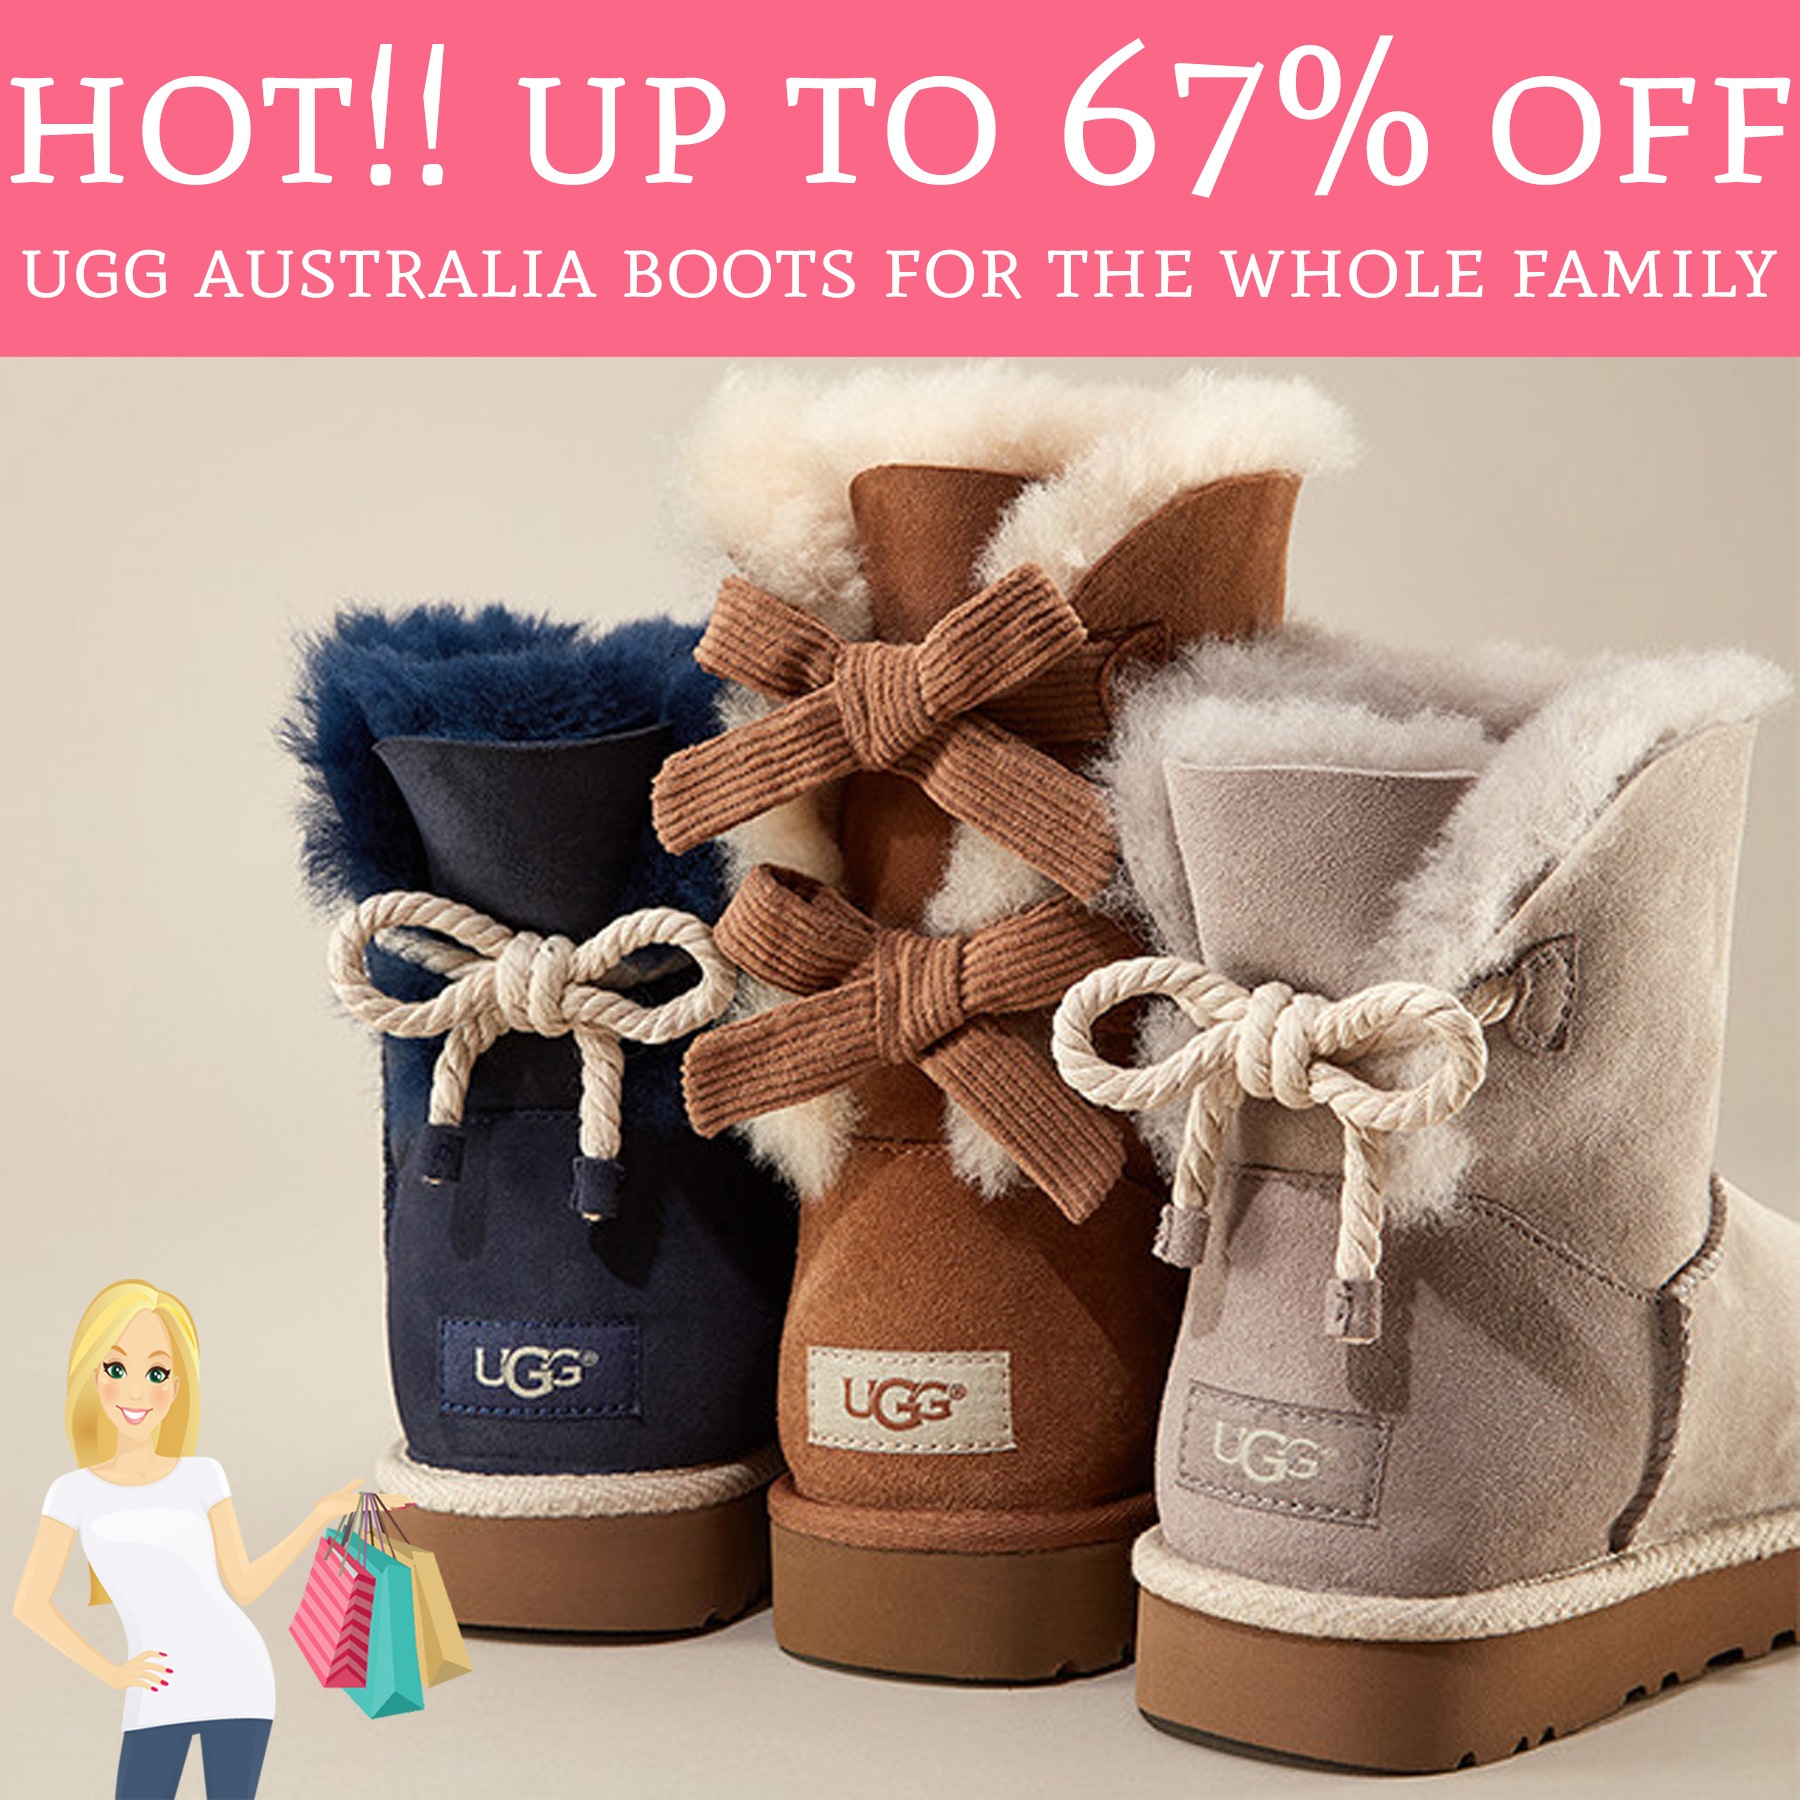 The Ugg Australia Event is back!!